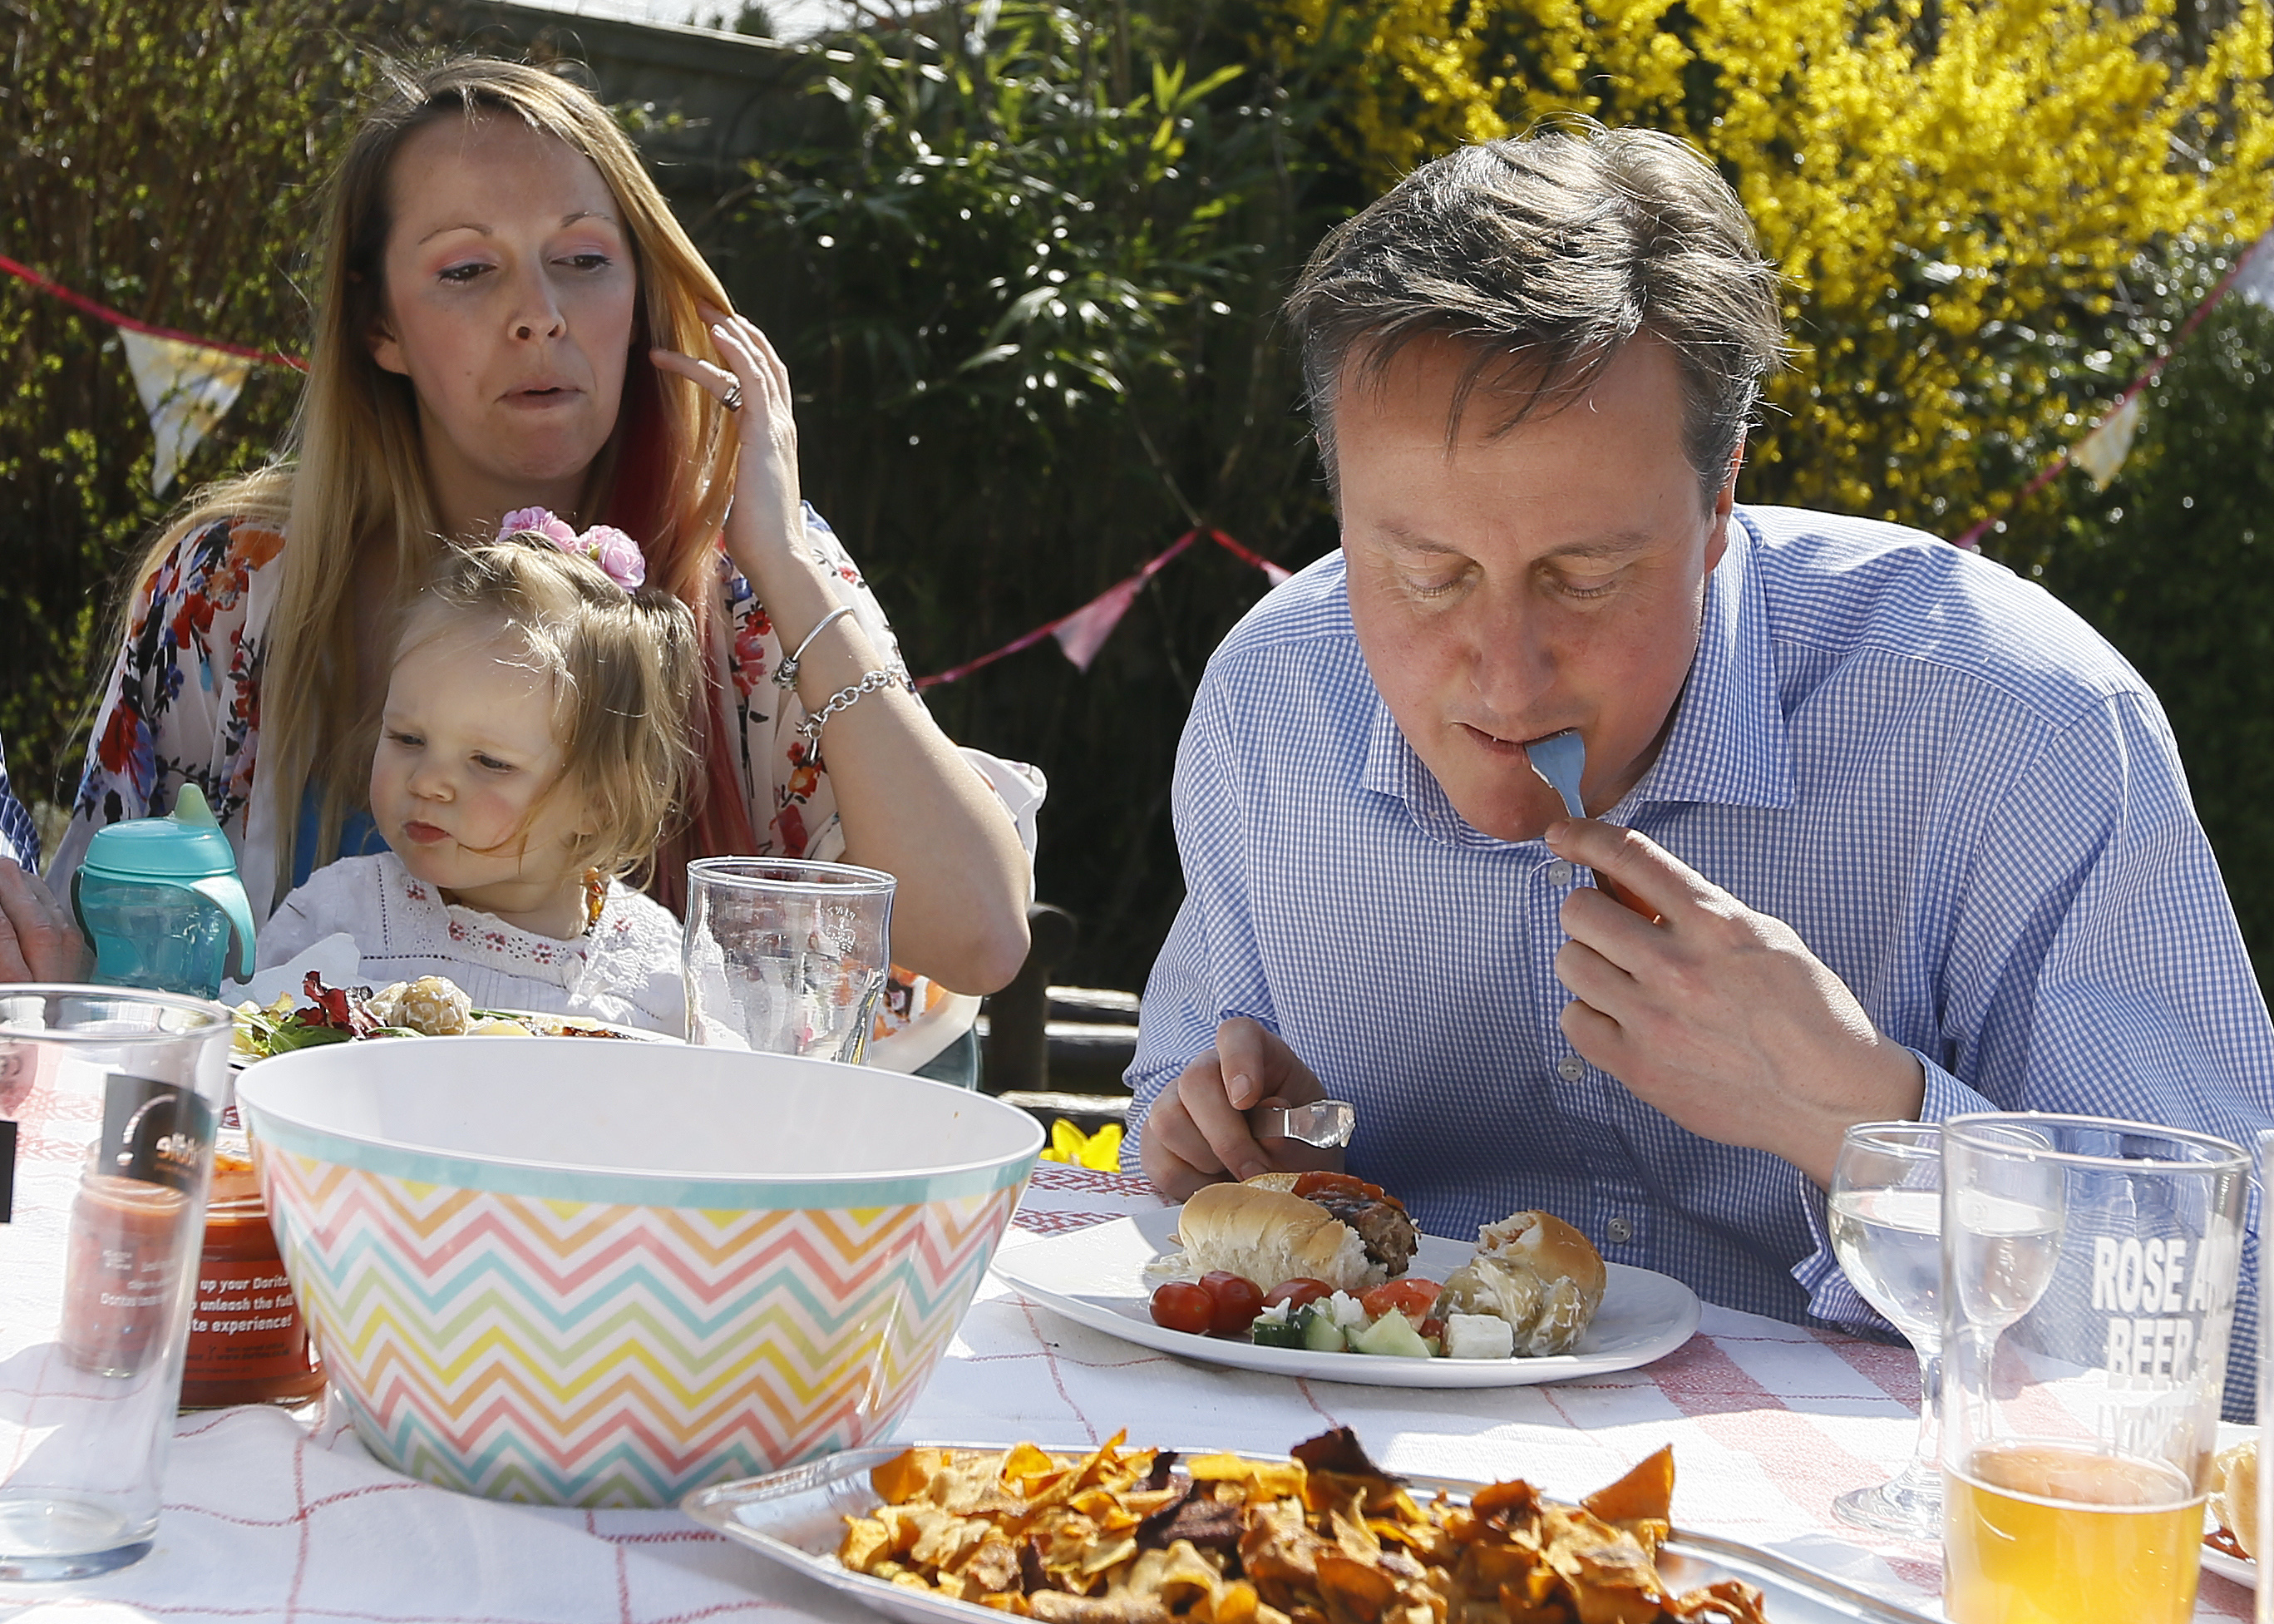 British Prime Minister David Cameron Doesn't Know How to Eat Hot Dogs